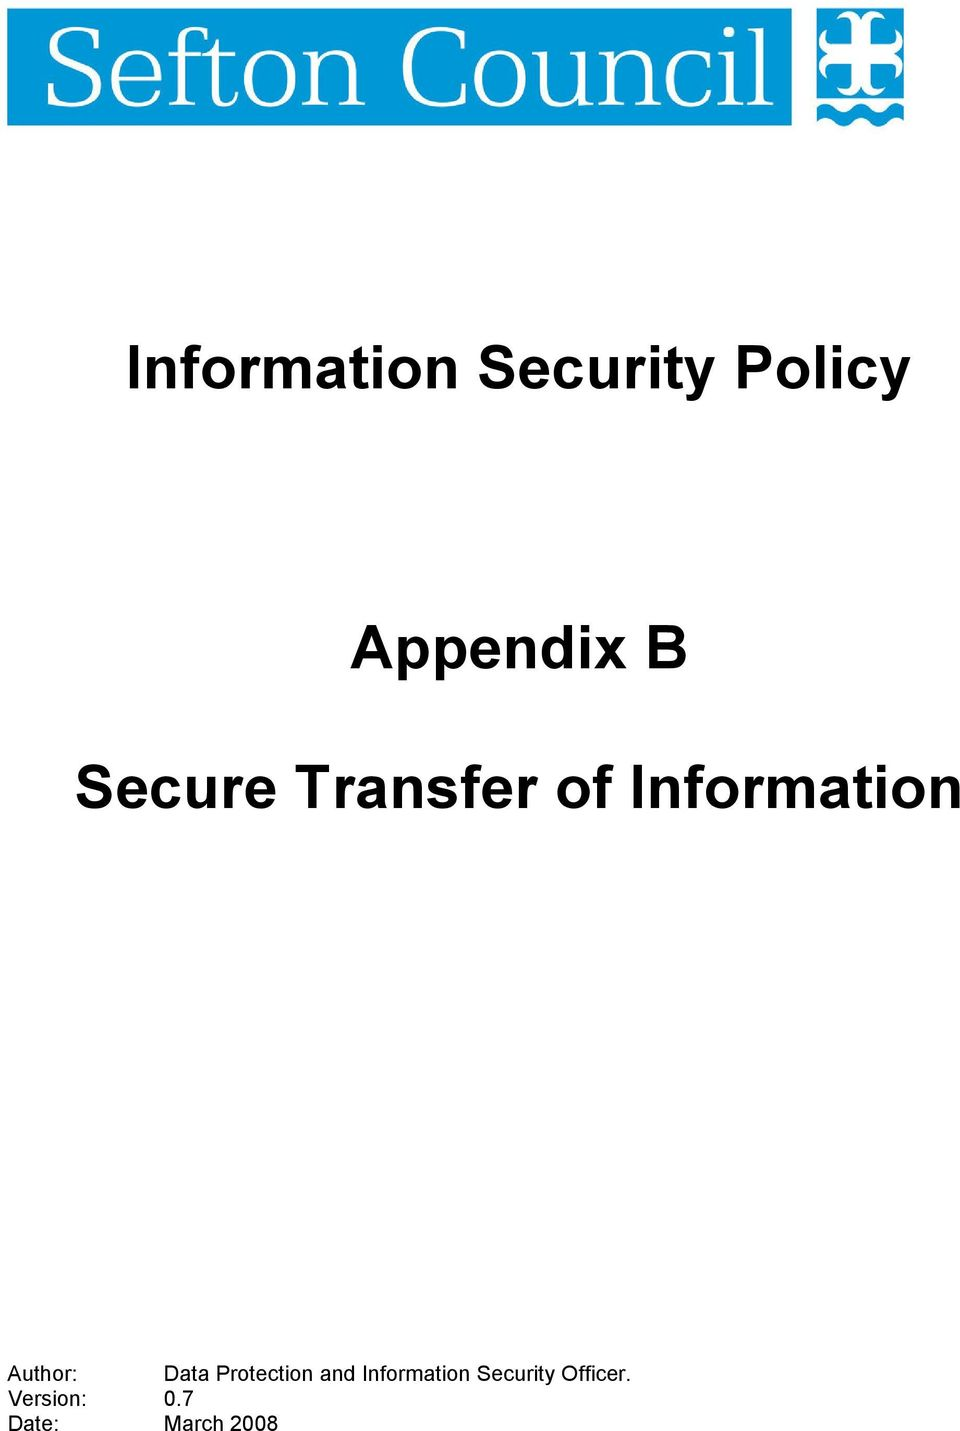 Data Protection and Information